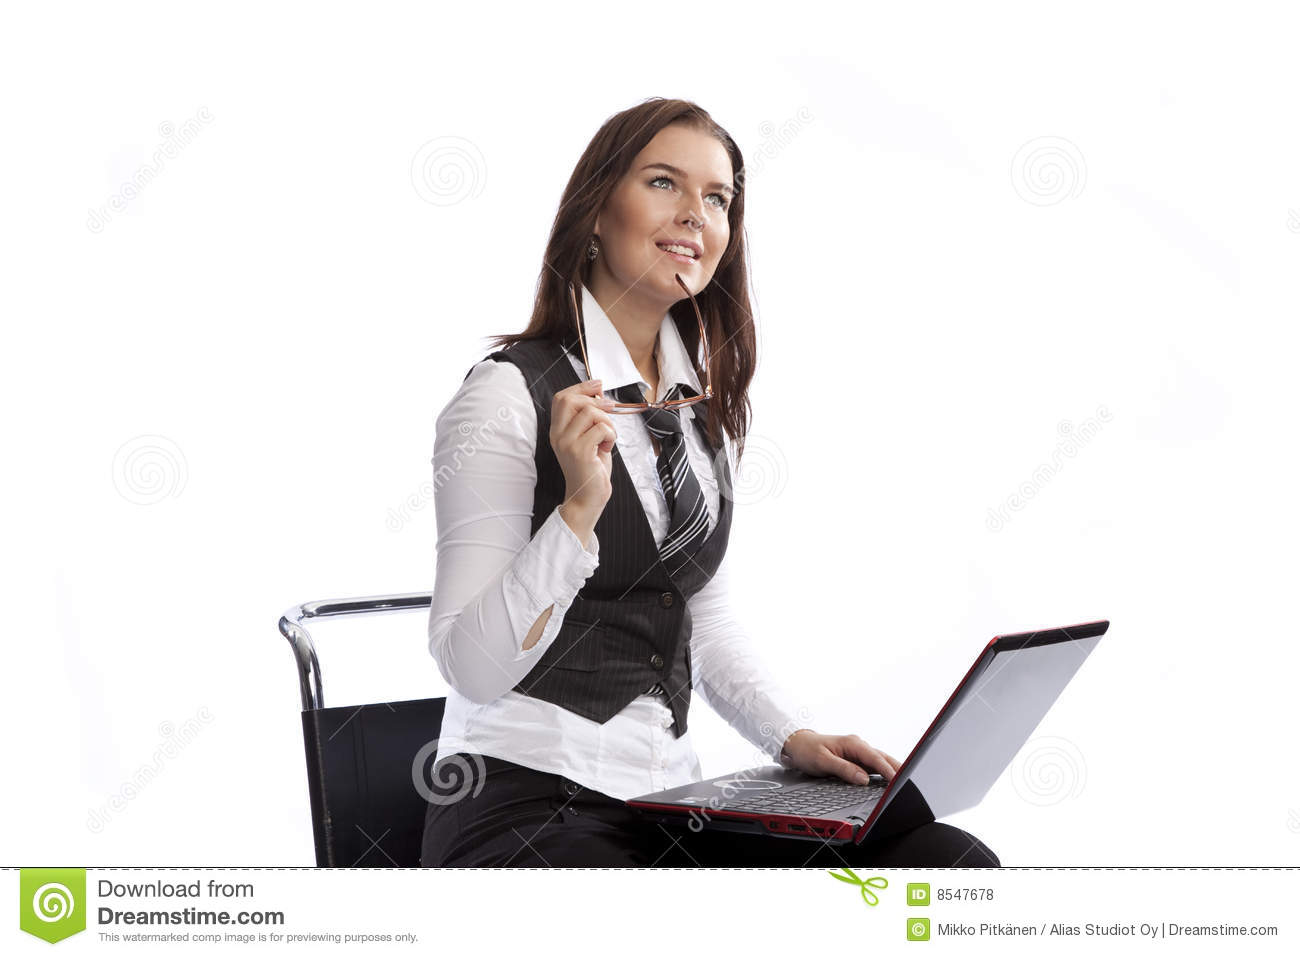 Young Business Woman Royalty Free Stock Photos - Image: 8547678: dreamstime.com/royalty-free-stock-photos-young-business-woman...